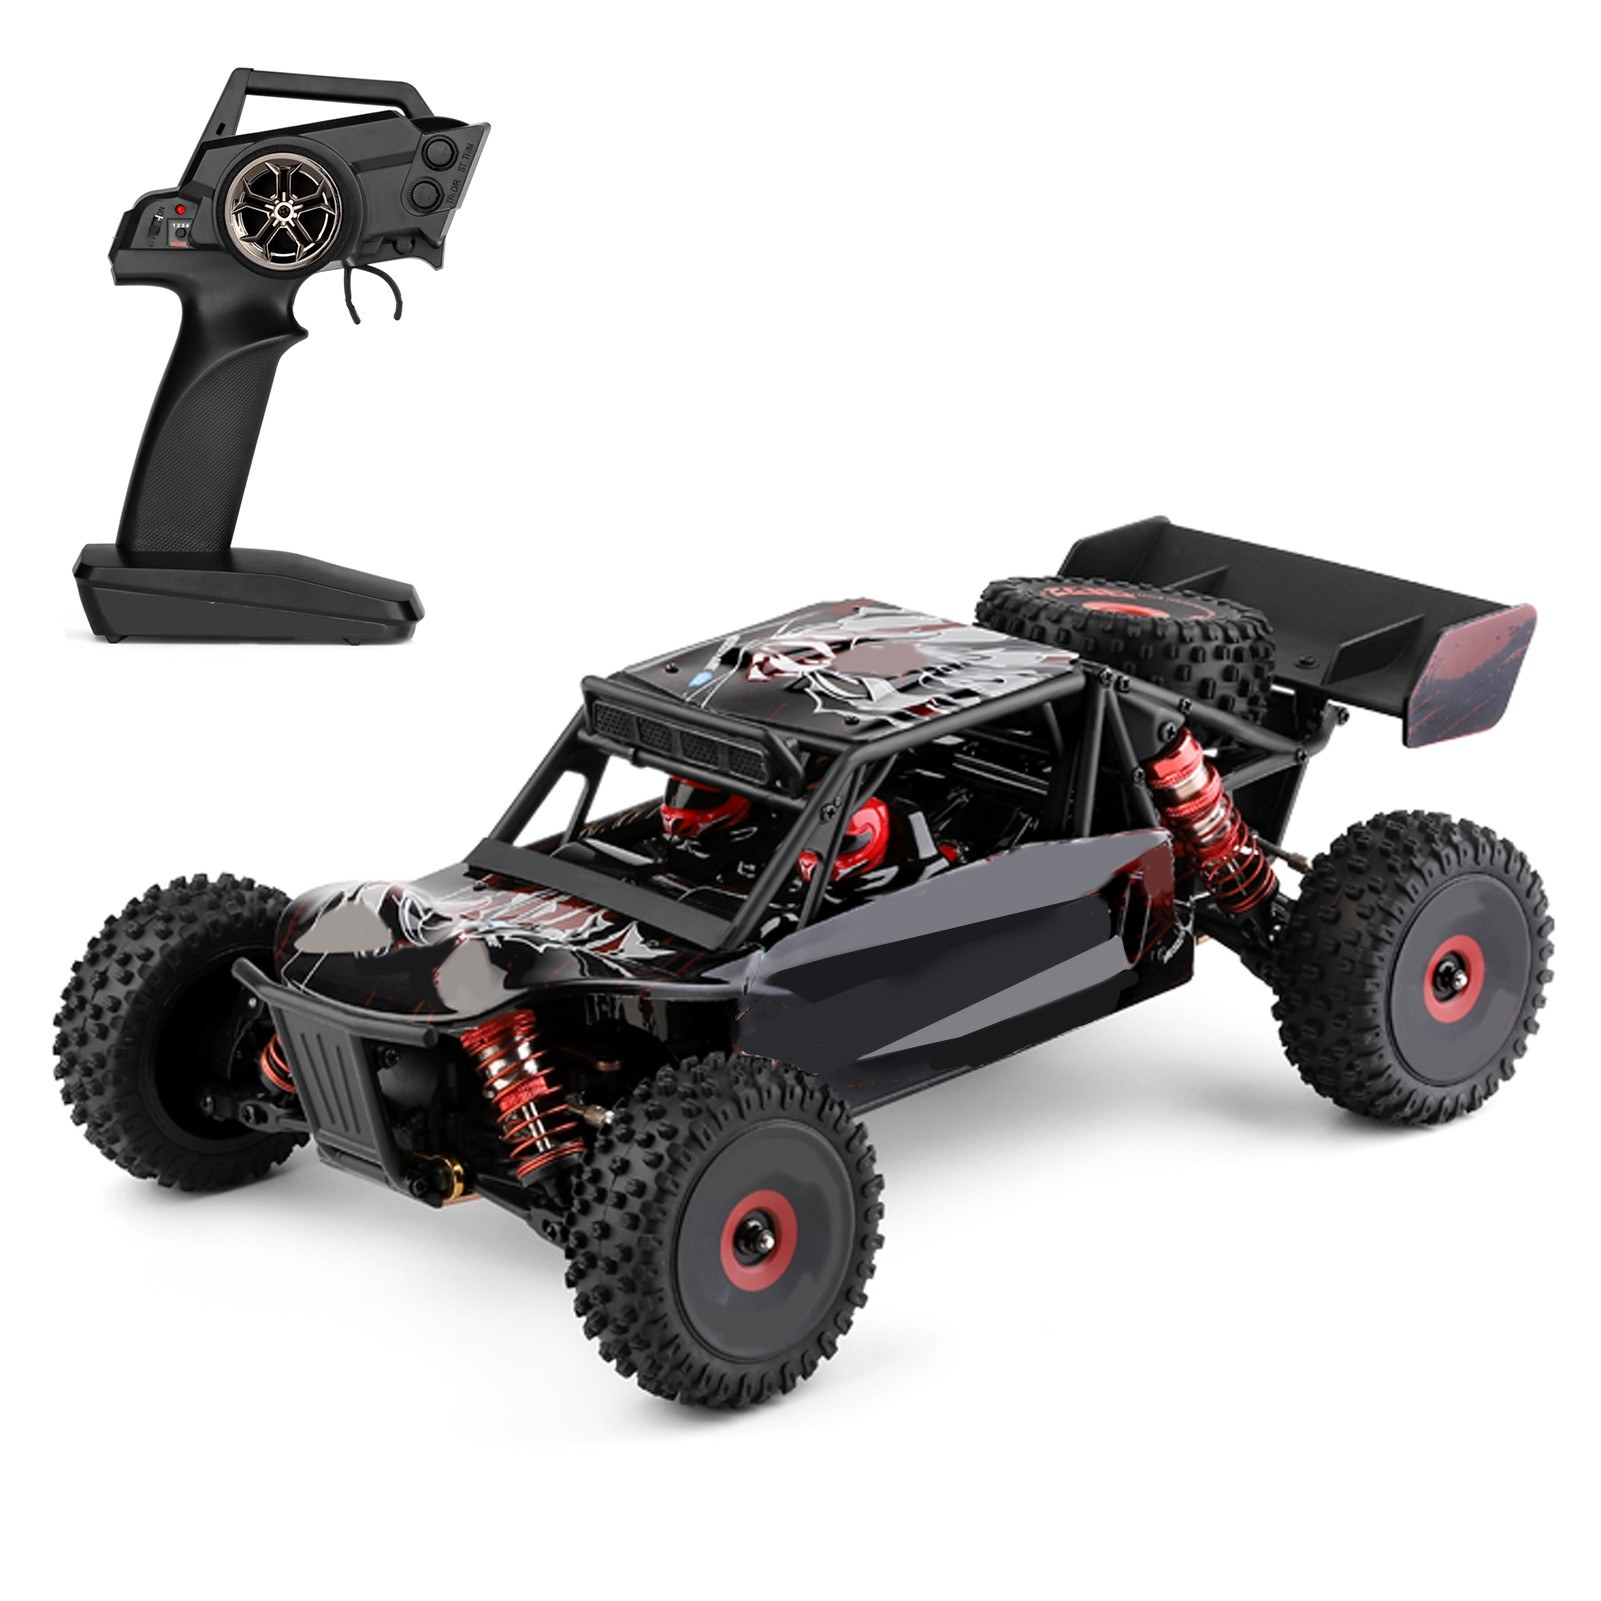 tomtop.com - 55% OFF WLtoys 124016 RC Car Off-Road Car High Speed RC Crawler, $144.99 (Inclusive of VAT)